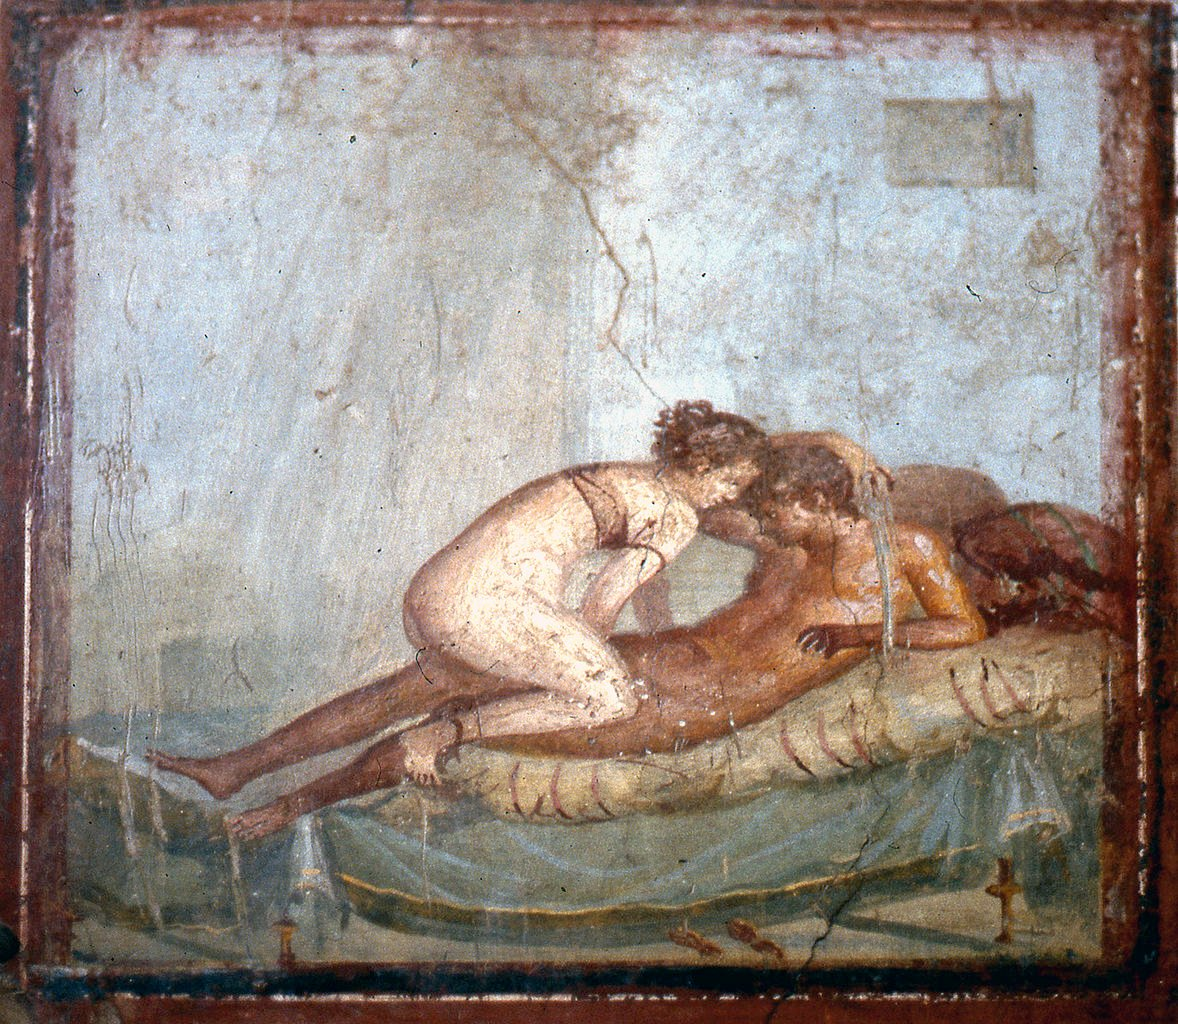 Ancient european erotic art